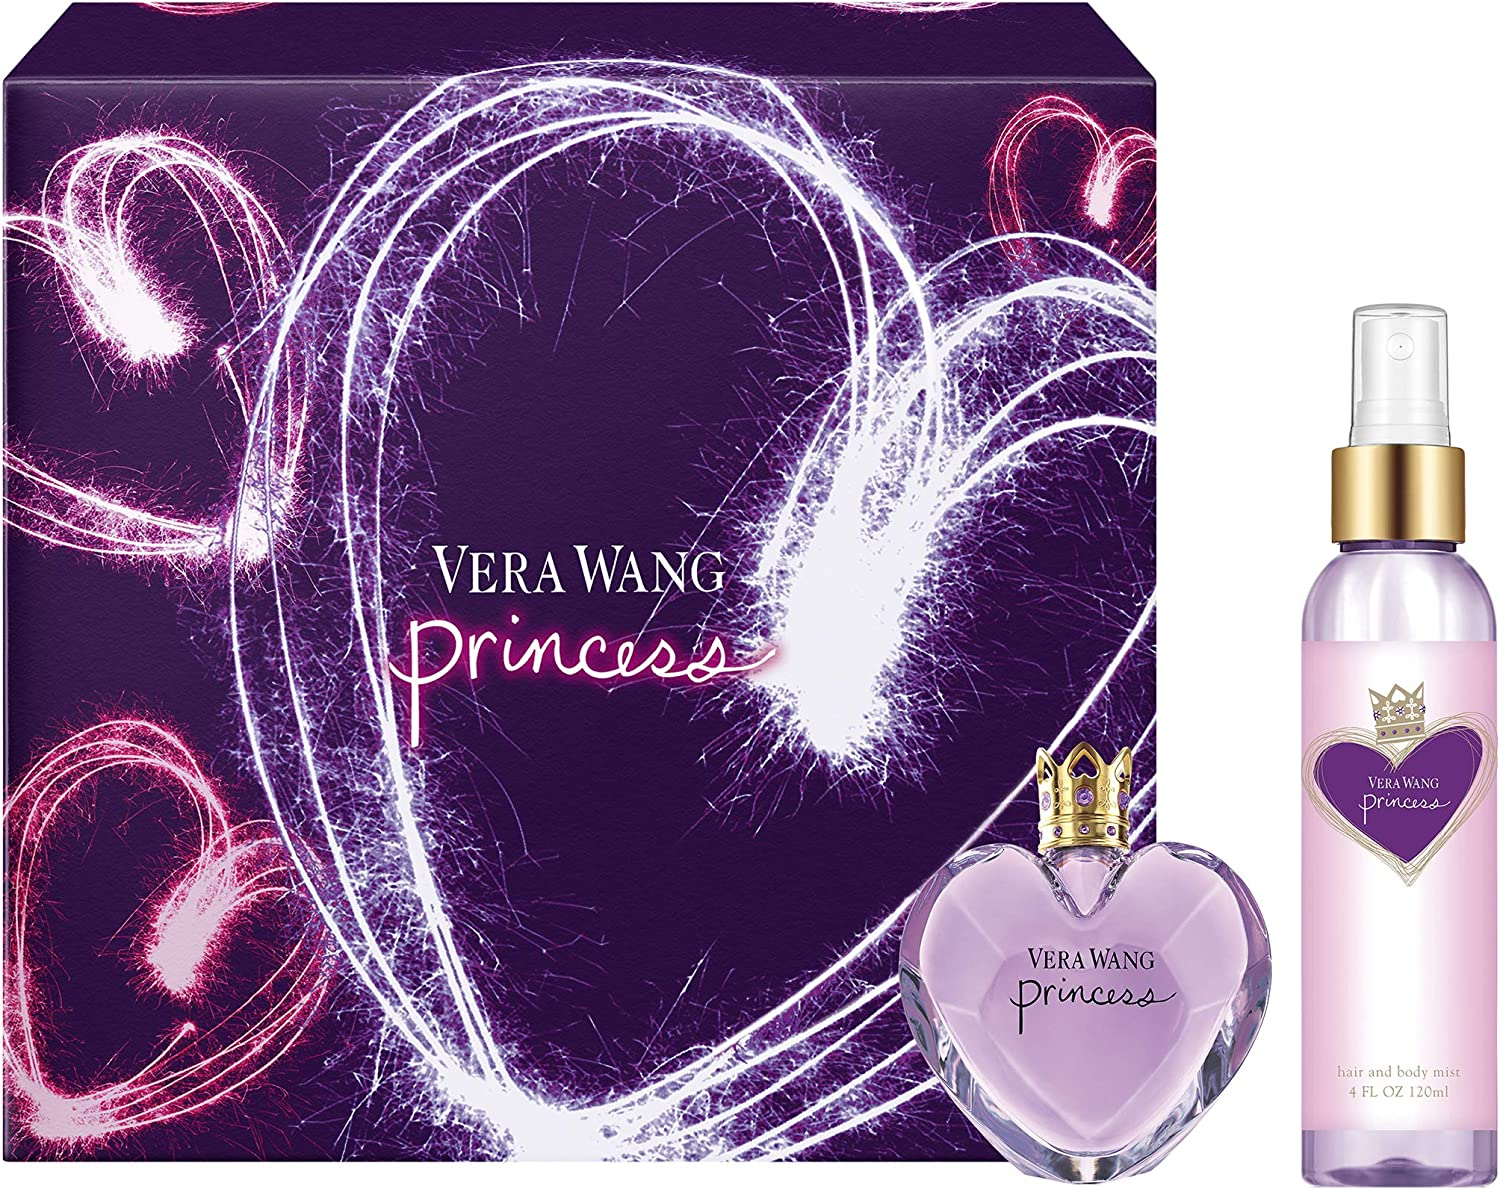 Vera Wang Princess Duo Gift Set – 30ml EDT + 150ml Body Mist 55% OFF £18 @ Amazon